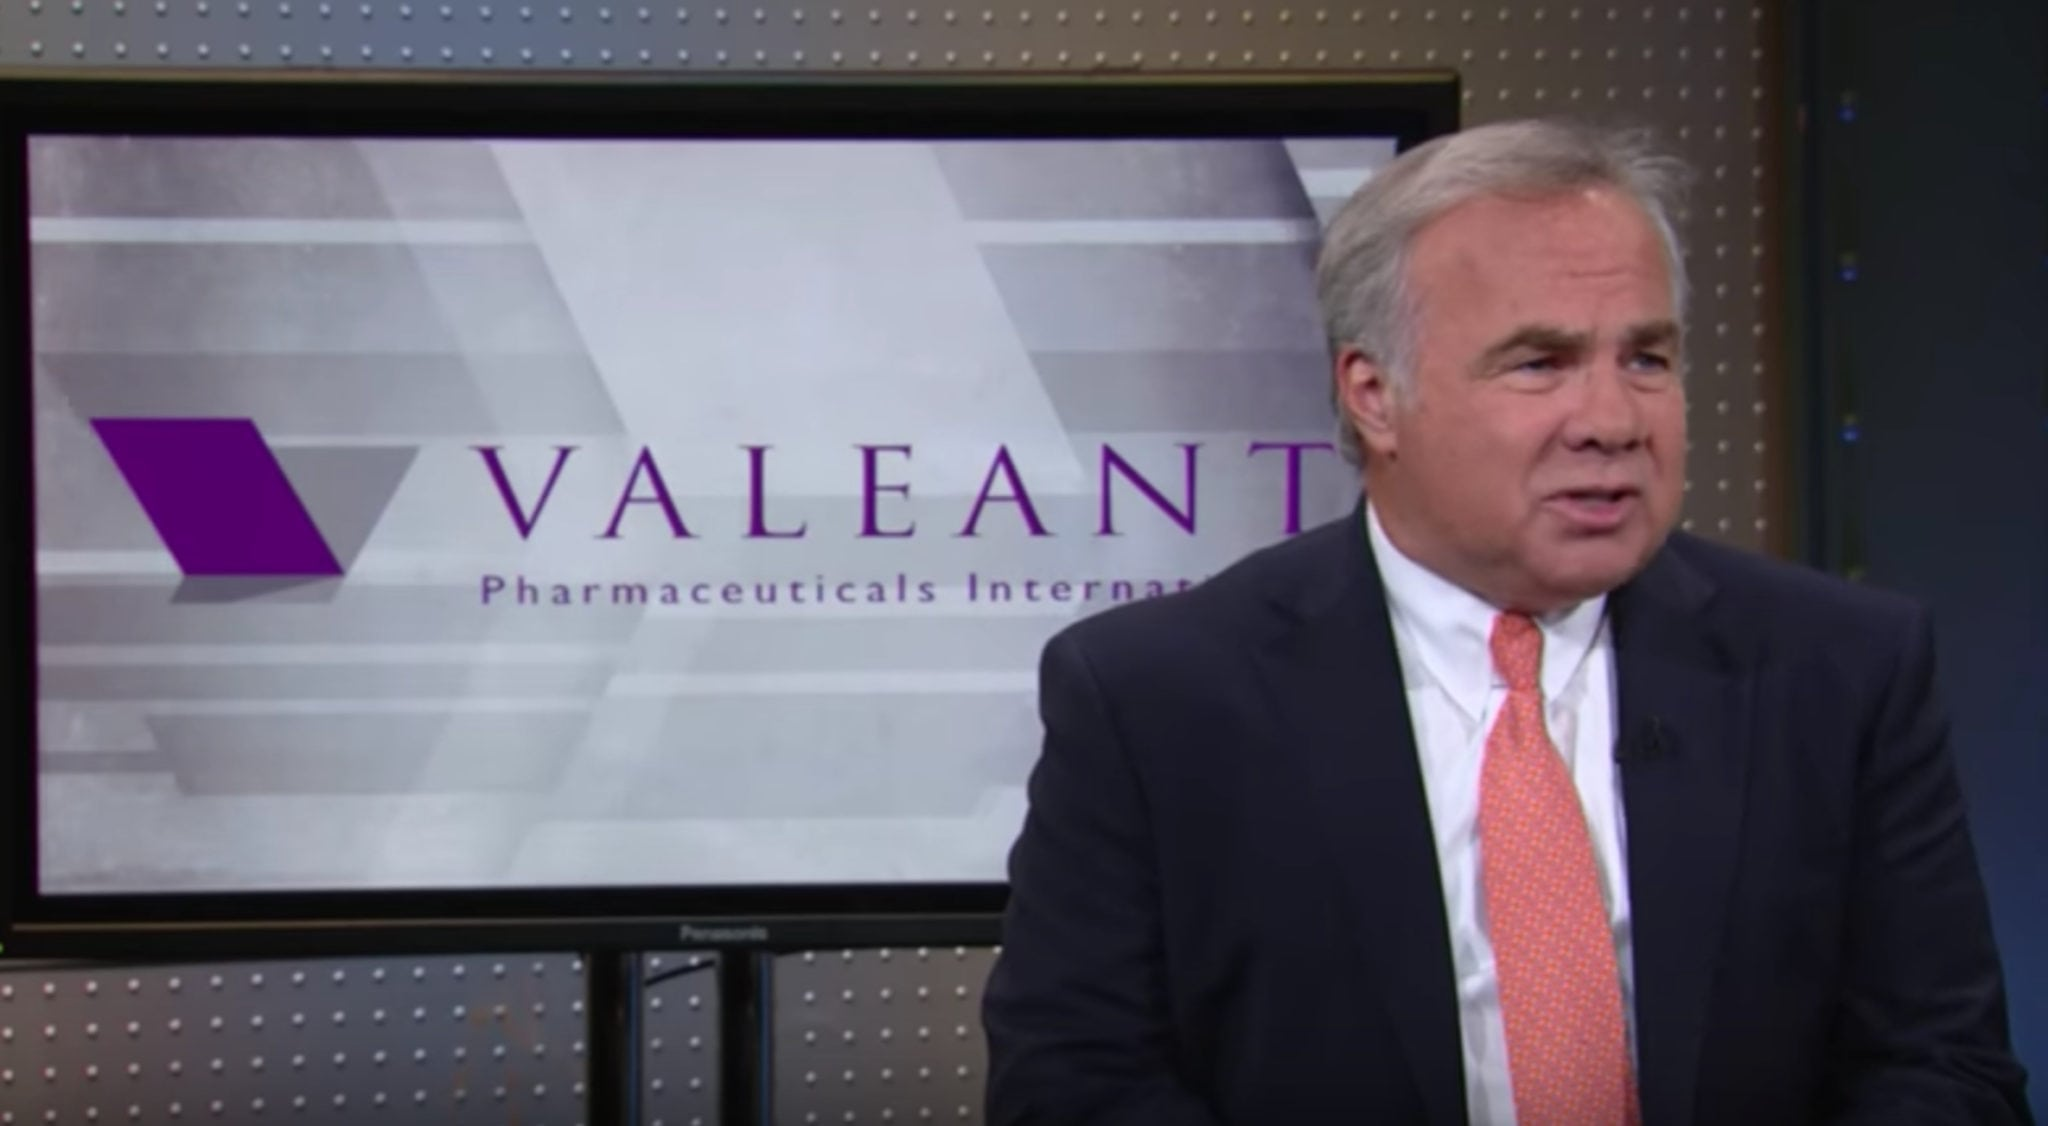 Valeant psoriasis treatment rejected by FDA